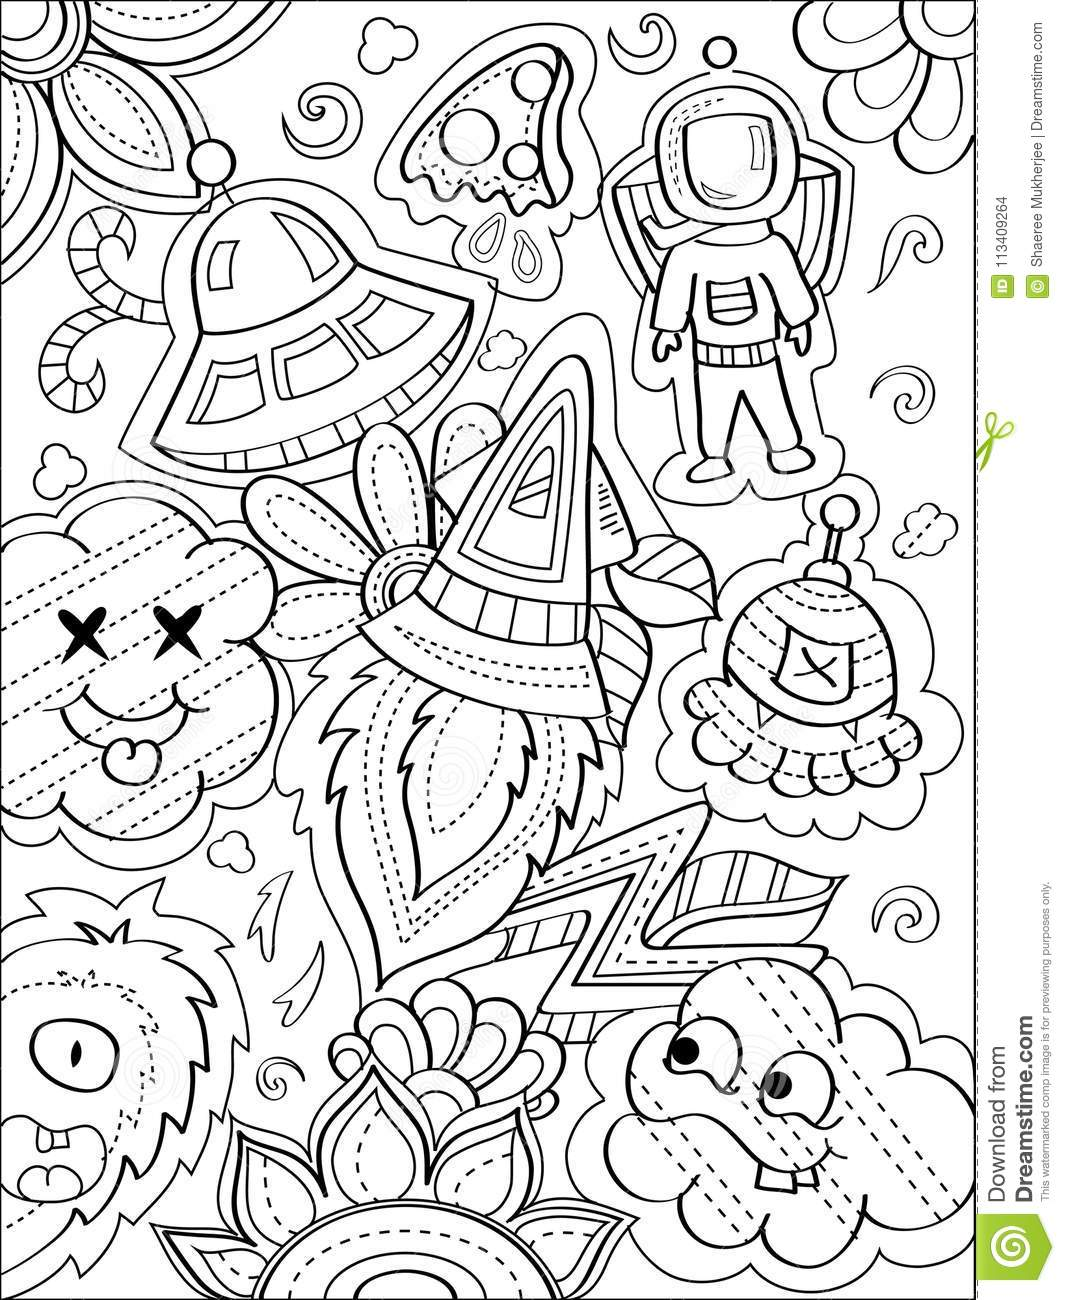 Space Coloring Stock Illustrations – 6,798 Space Coloring Stock  Illustrations, Vectors & Clipart - Dreamstime